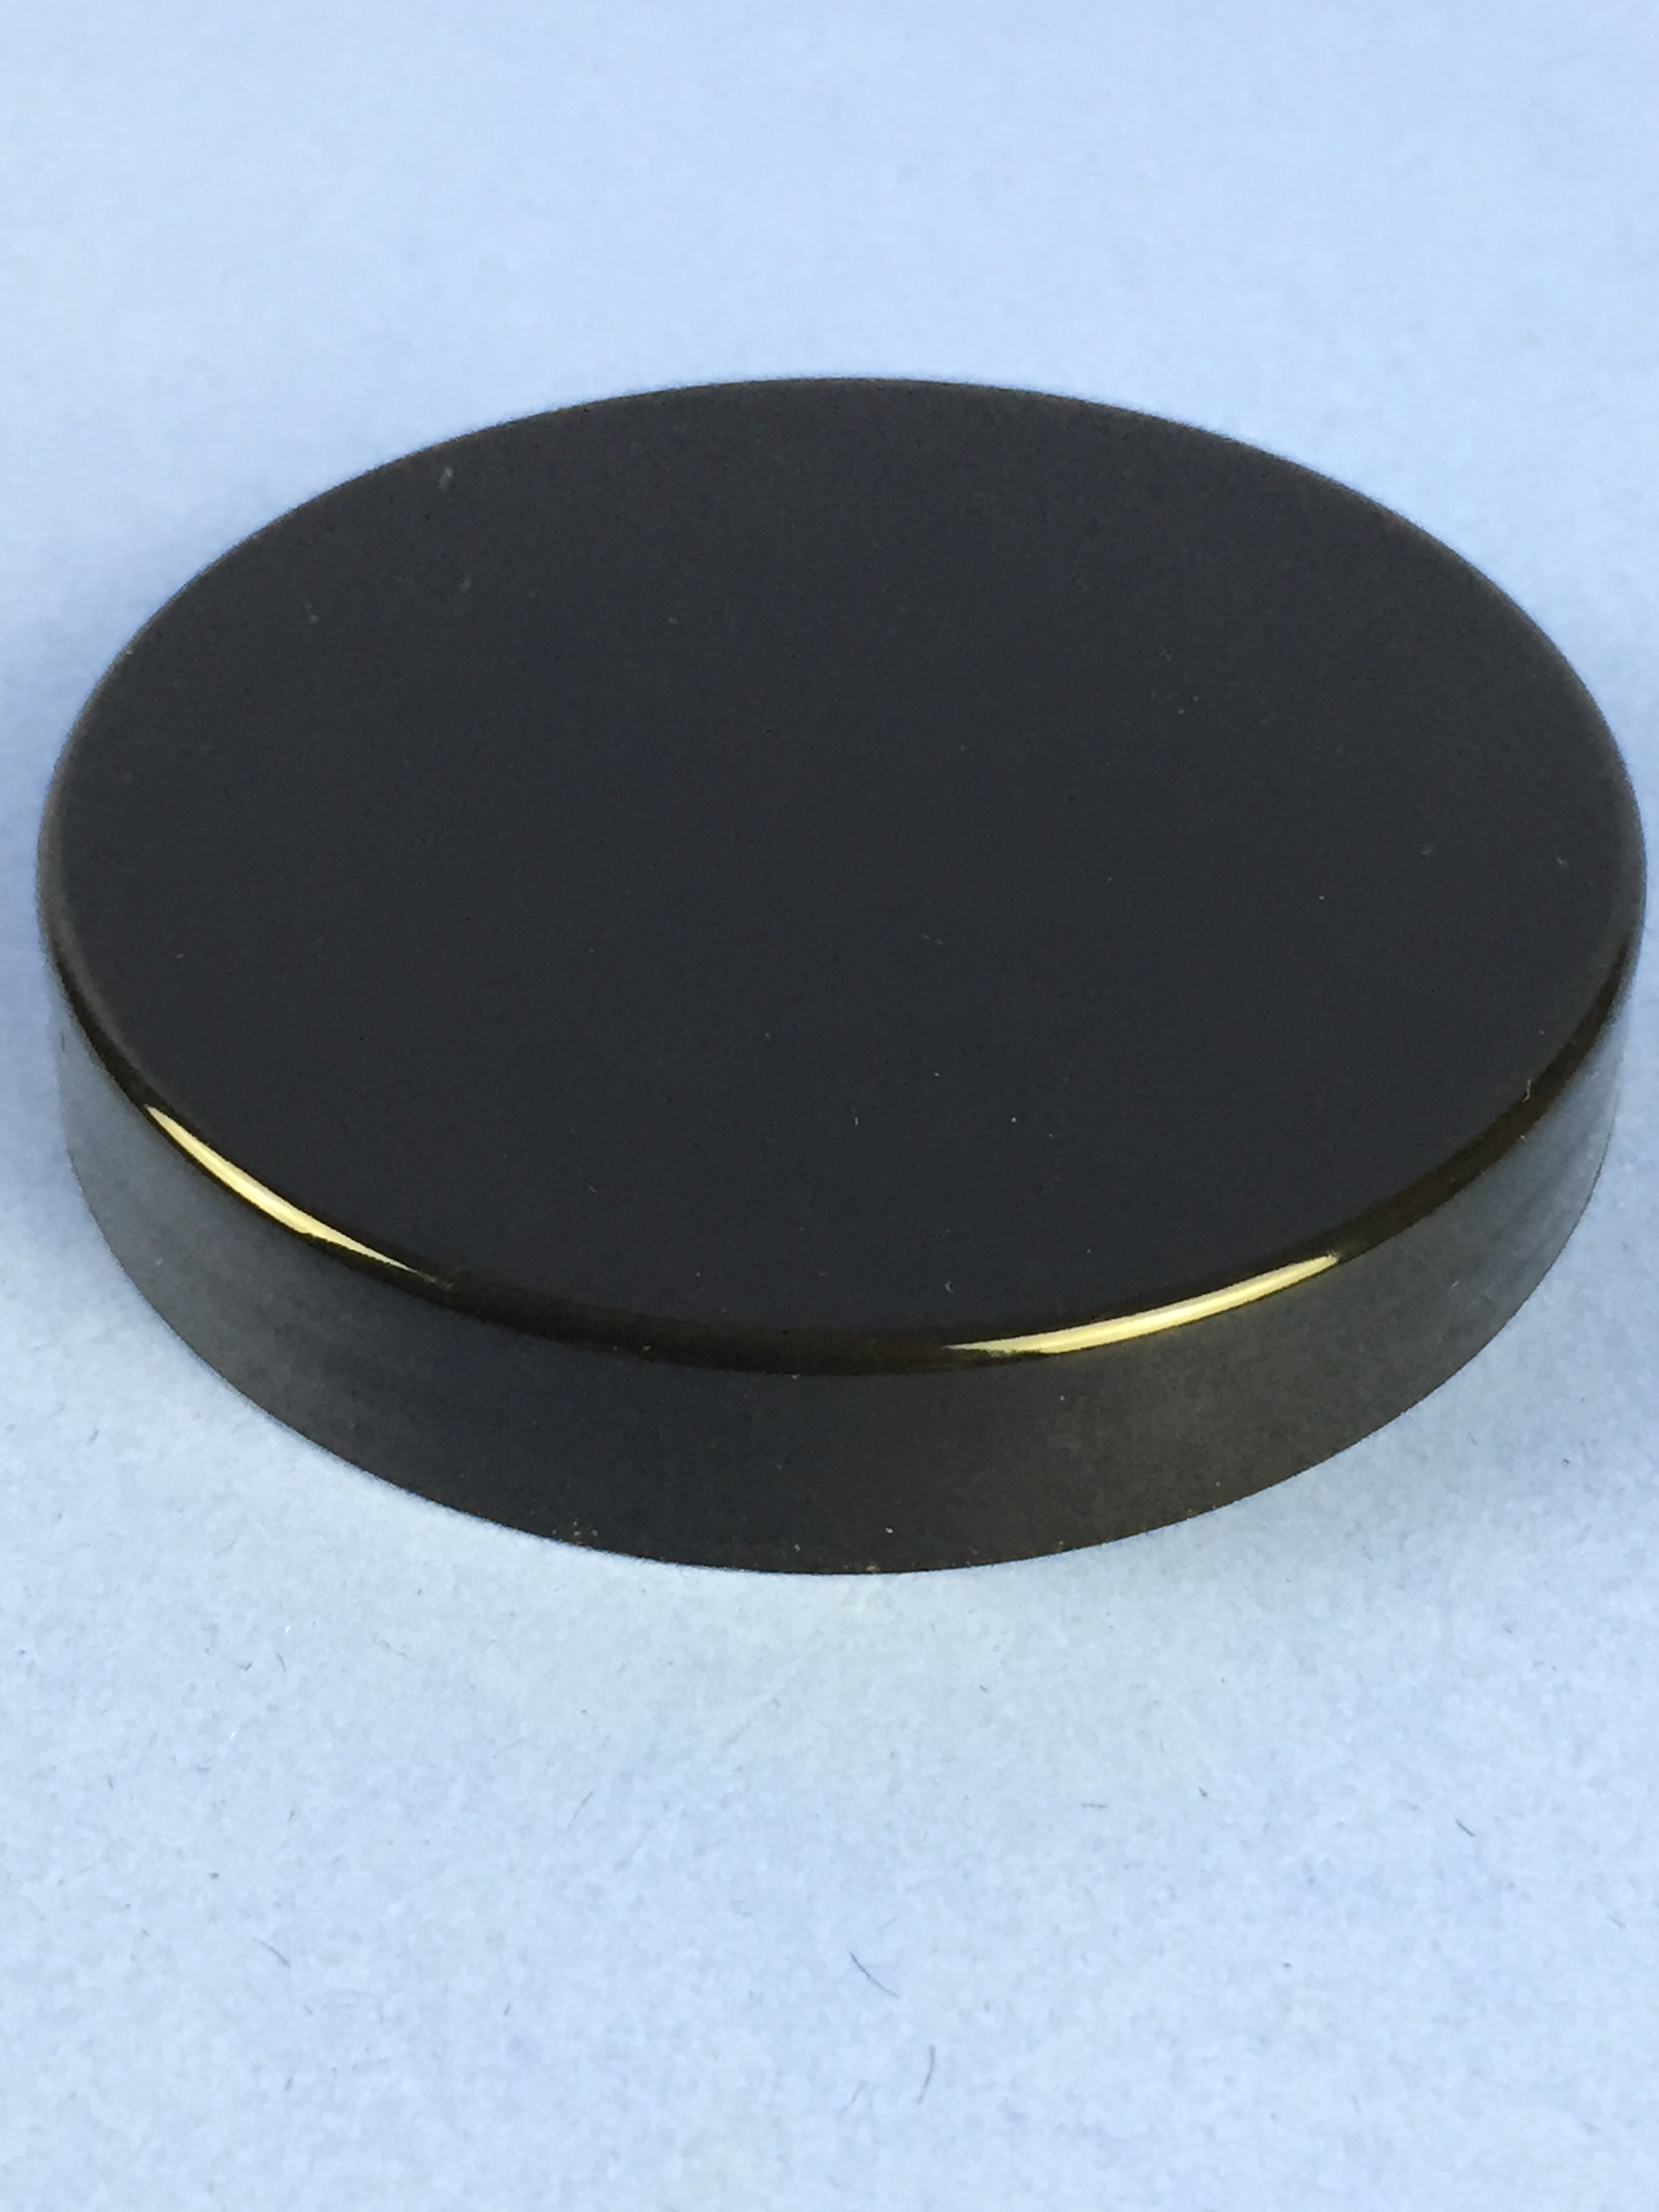 Black Lid To Suit Sj10 Hdpe Jar Bristol Plastics